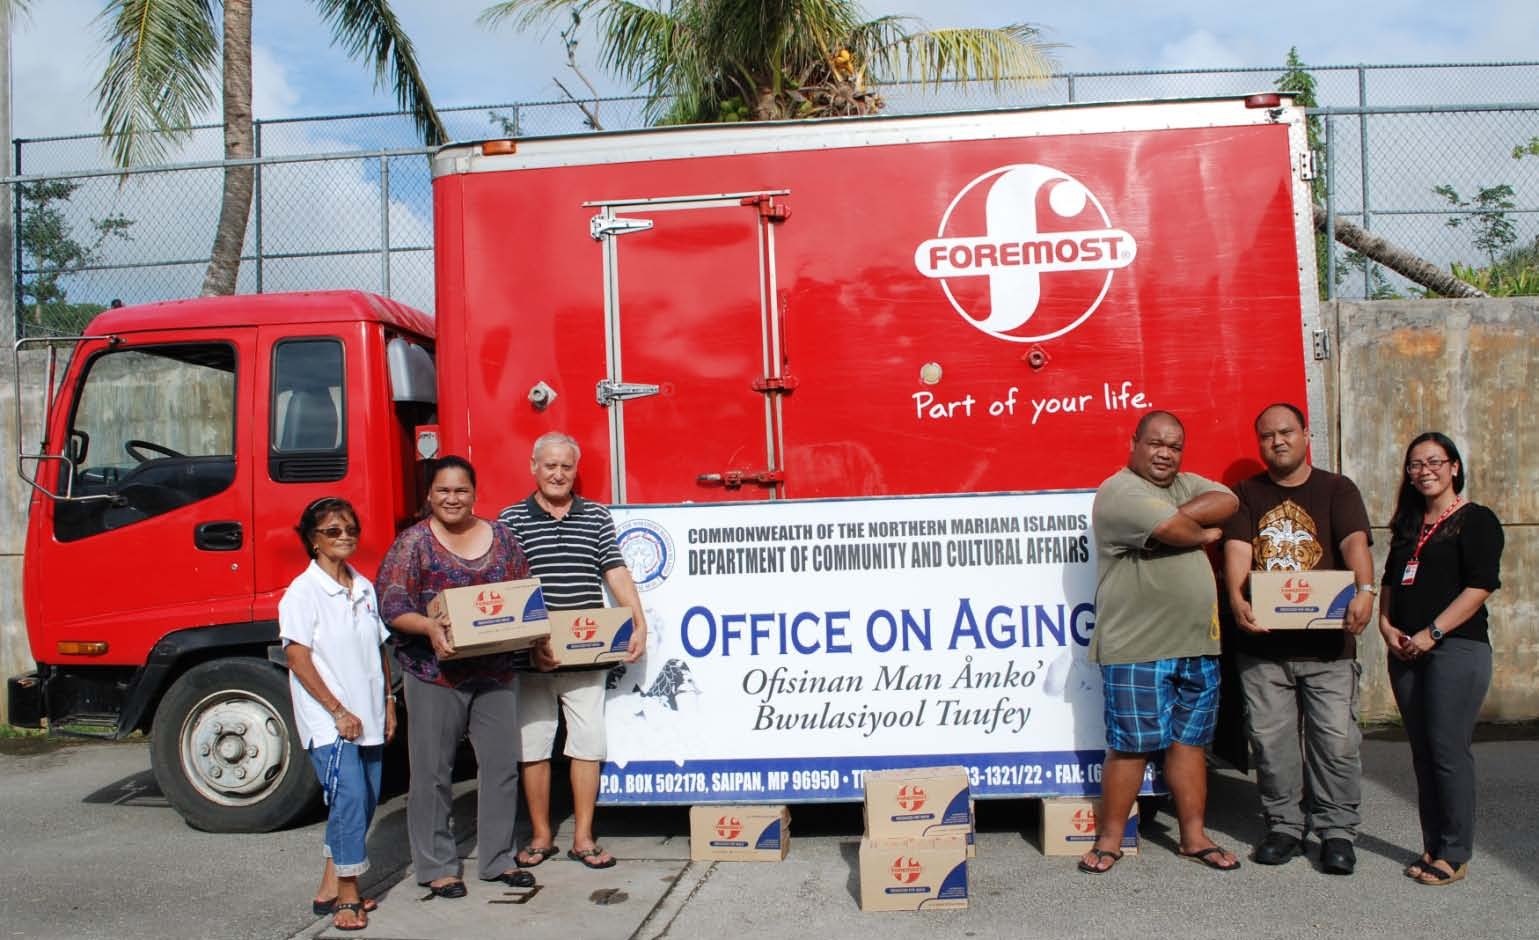 FOREMOST DONATES 200 CASES OF MILK